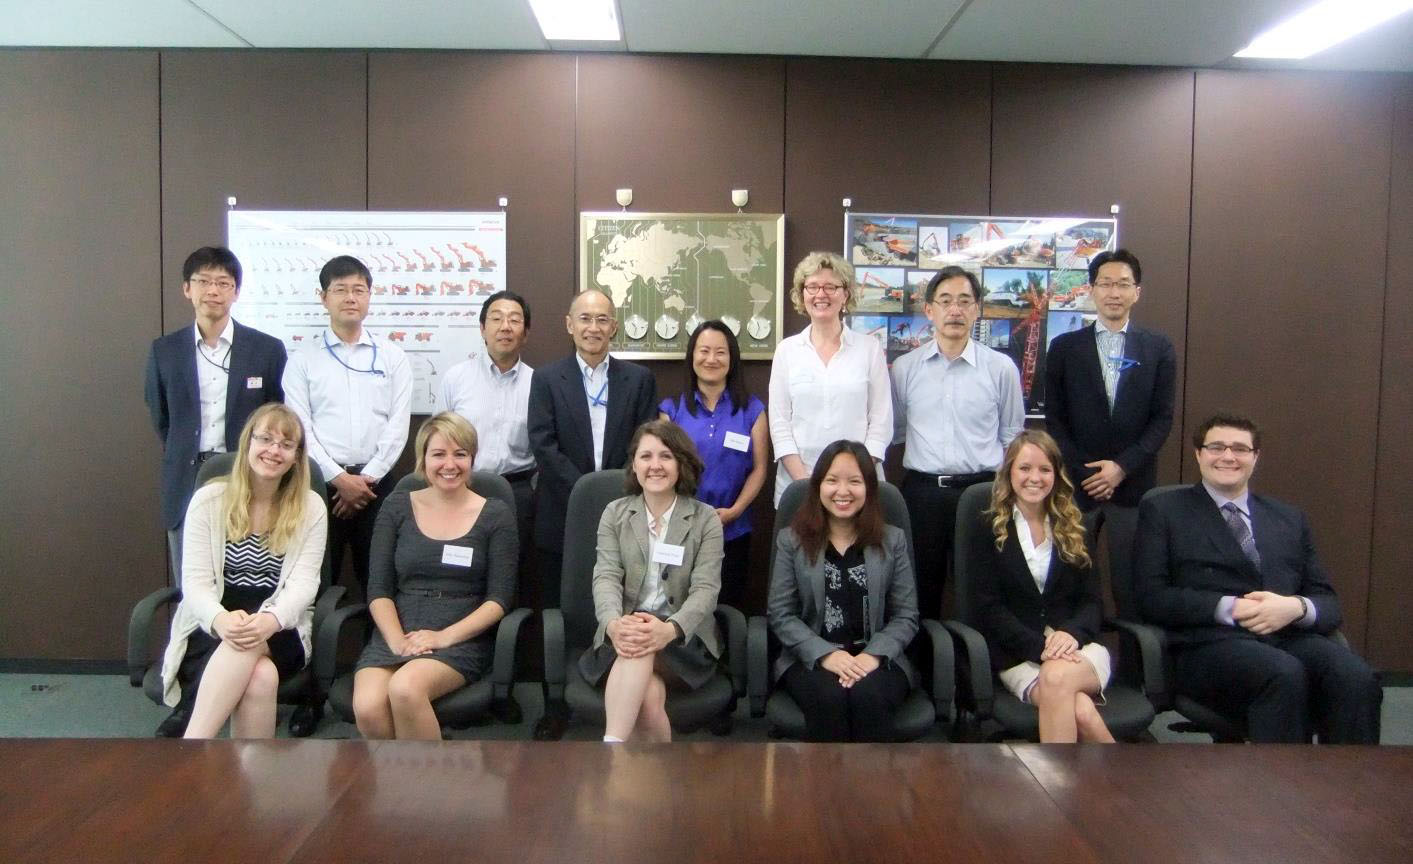 A group picture taken at the HCM headquarters before the final parting. June 16, 2015.